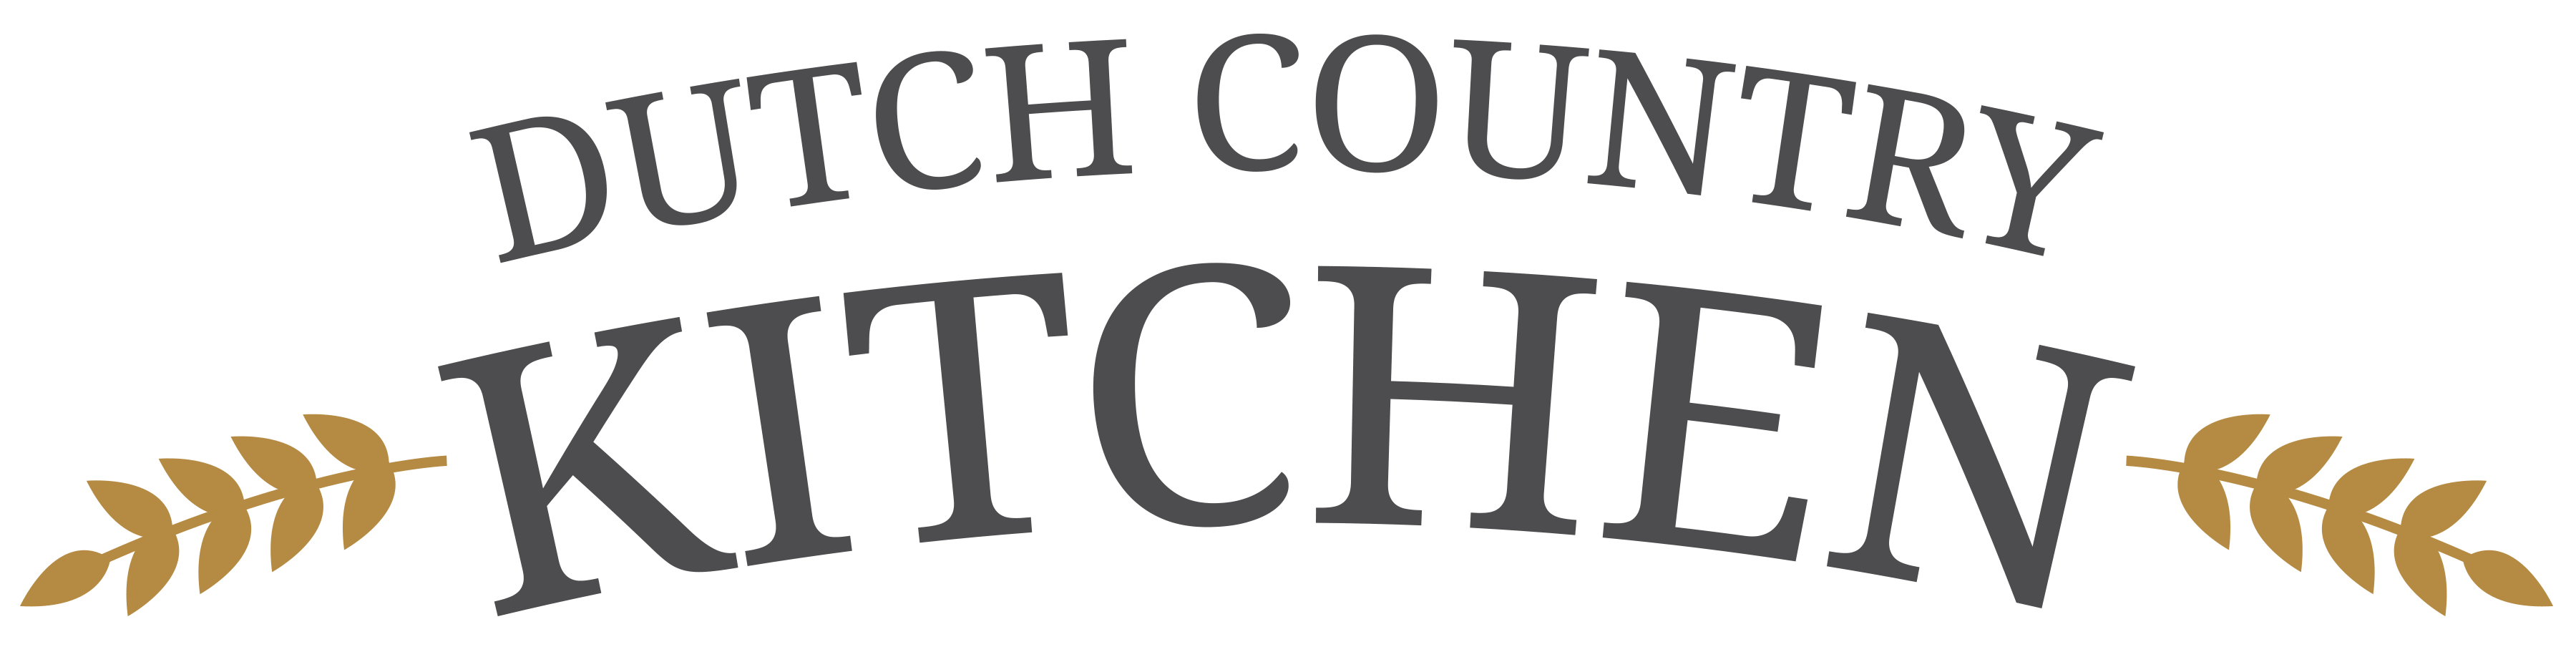 Dutch Country Kitchen Logo